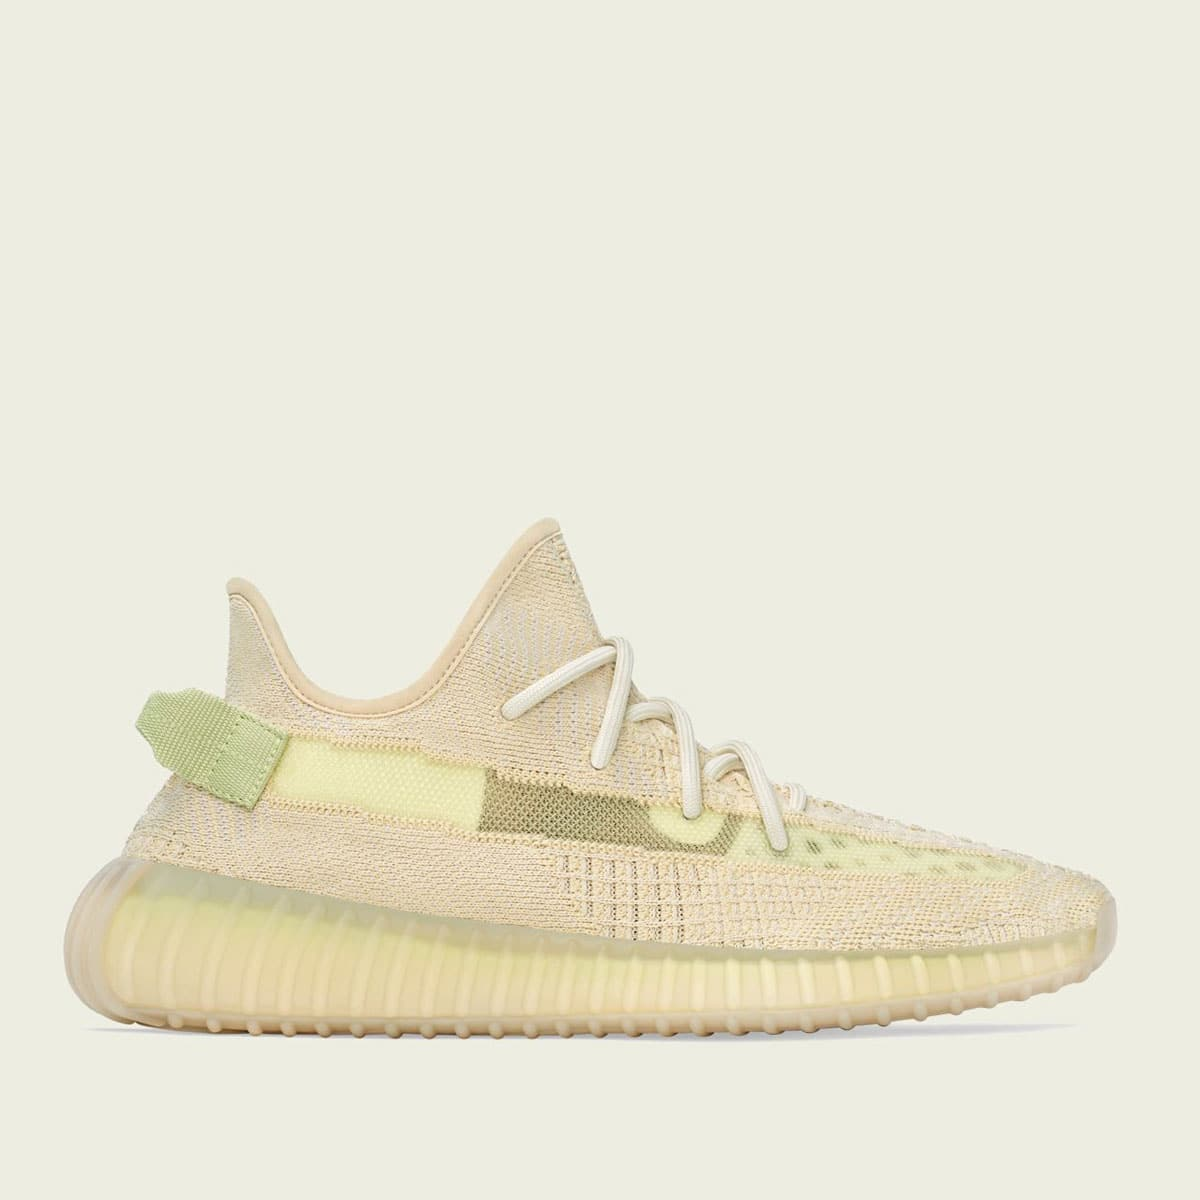 "adidas YEEZY BOOST 350 V2 ""FLAX"" BEIGE 20SS-S_photo_large"